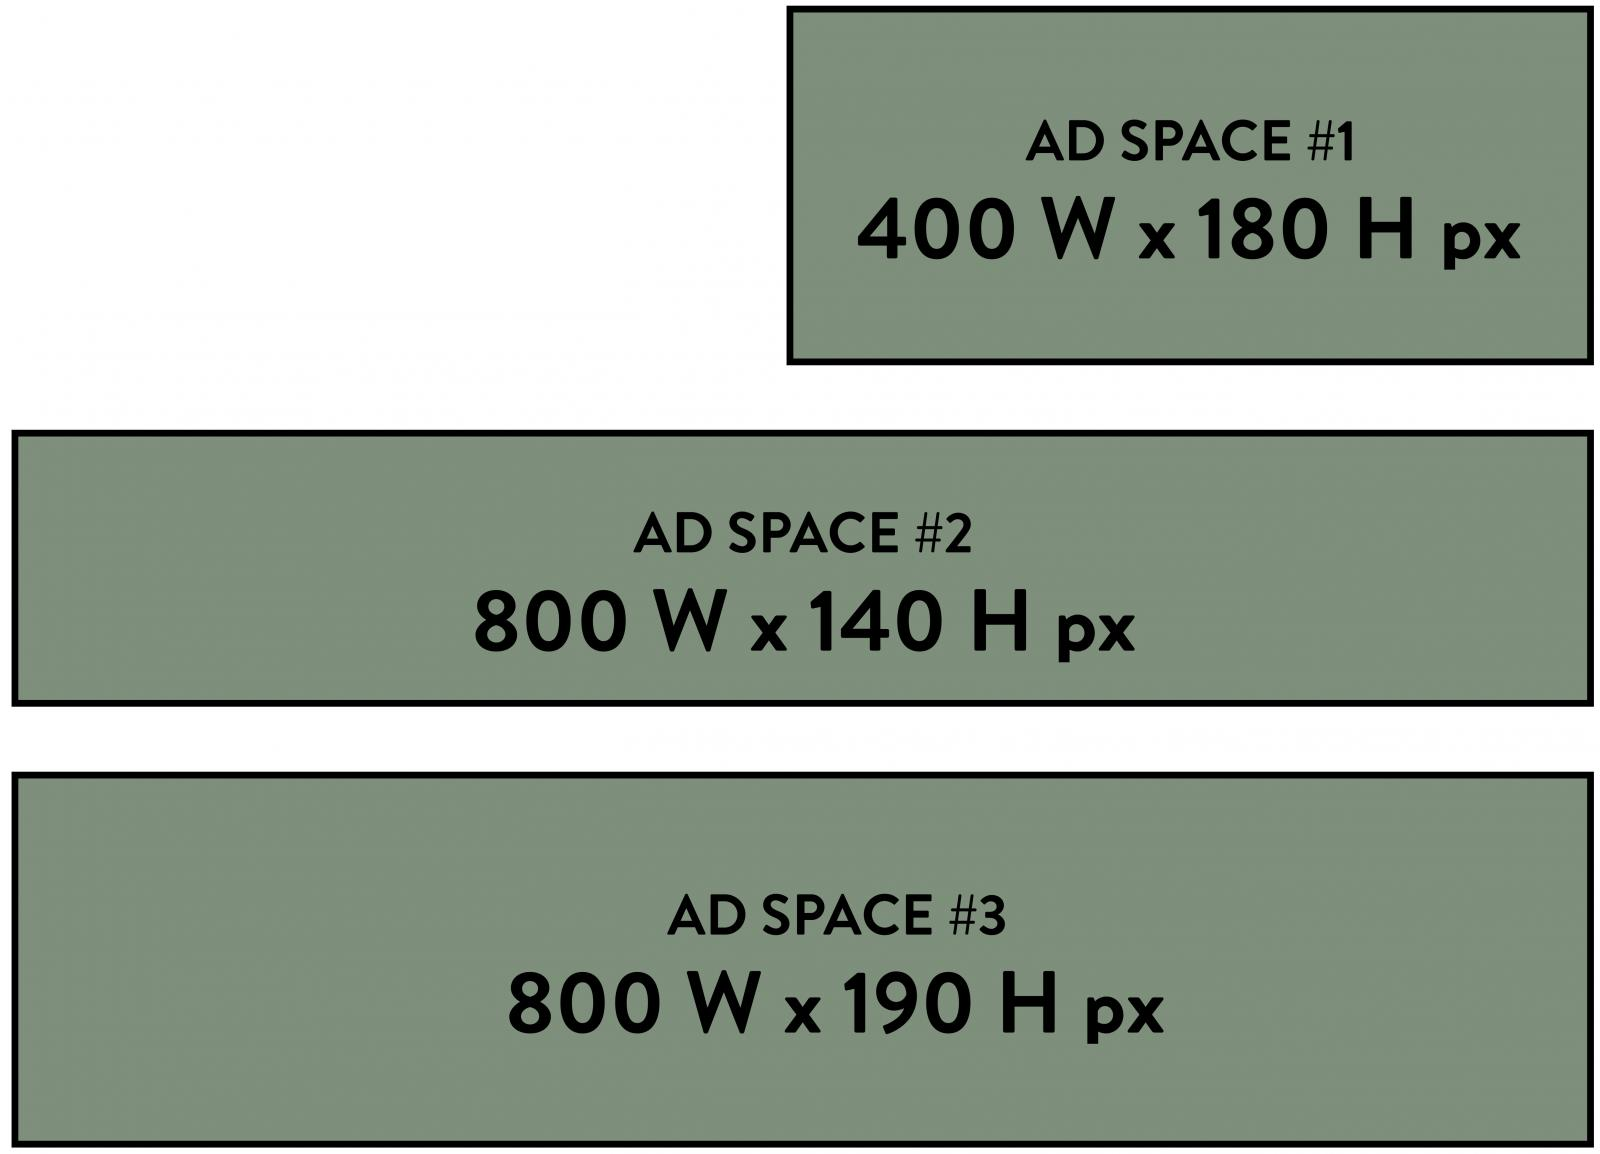 Photo depicting the size of each add space listed in the description